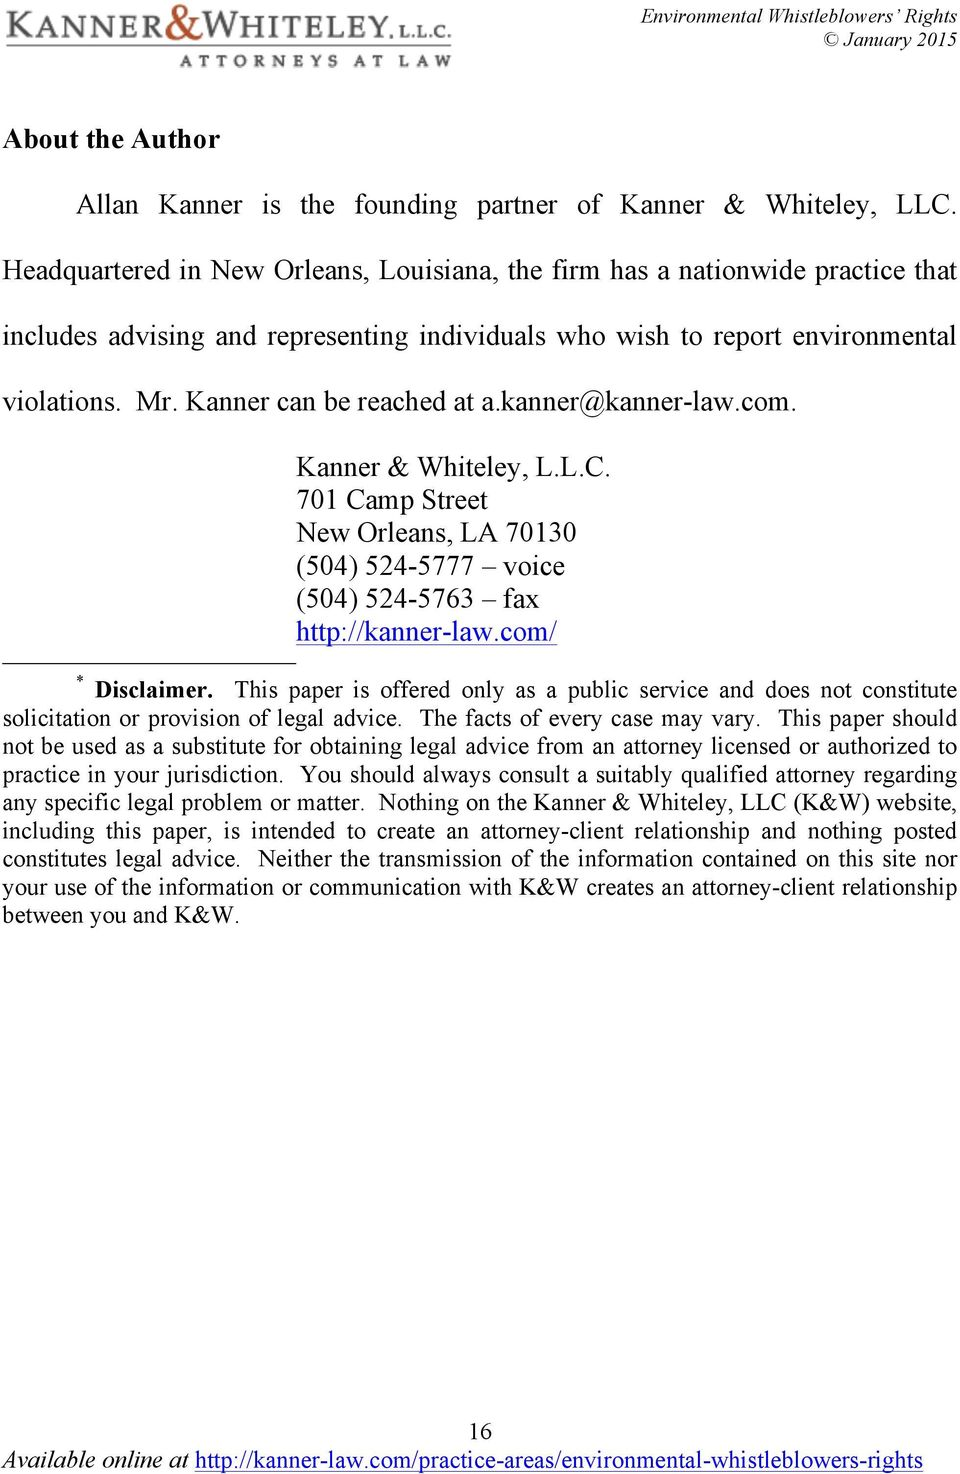 Kanner can be reached at a.kanner@kanner-law.com. Kanner & Whiteley, L.L.C. 701 Camp Street New Orleans, LA 70130 (504) 524-5777 voice (504) 524-5763 fax http://kanner-law.com/ * Disclaimer.